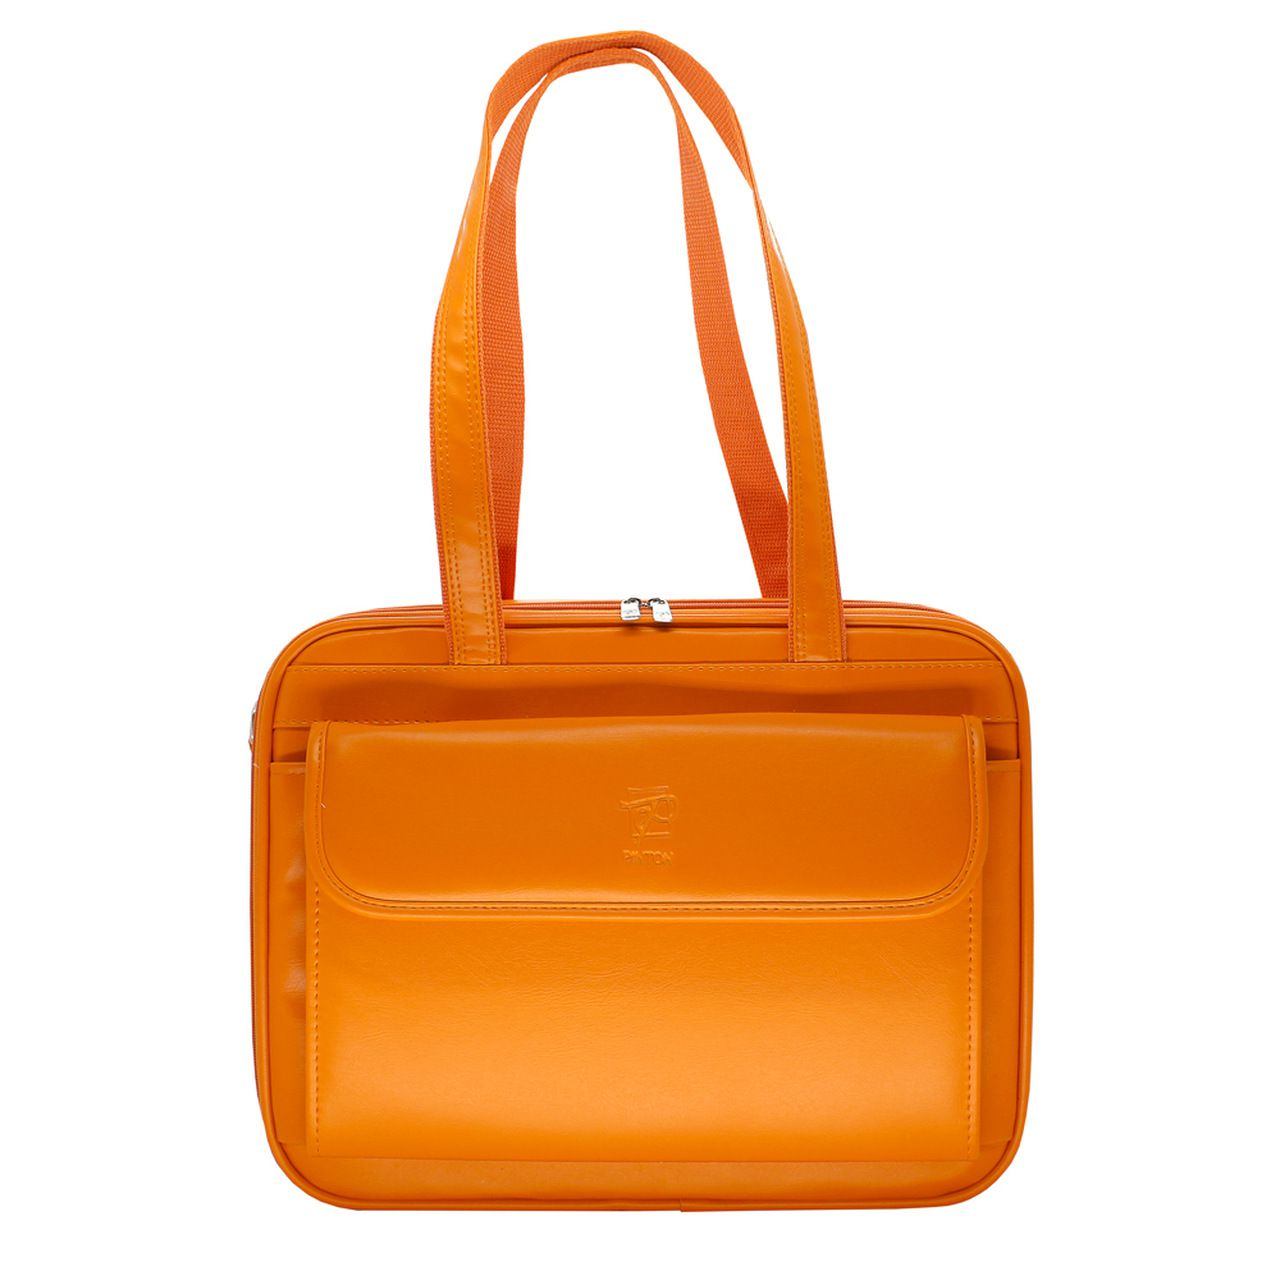 Maleta Notebook Feminina - Tropical Laranja